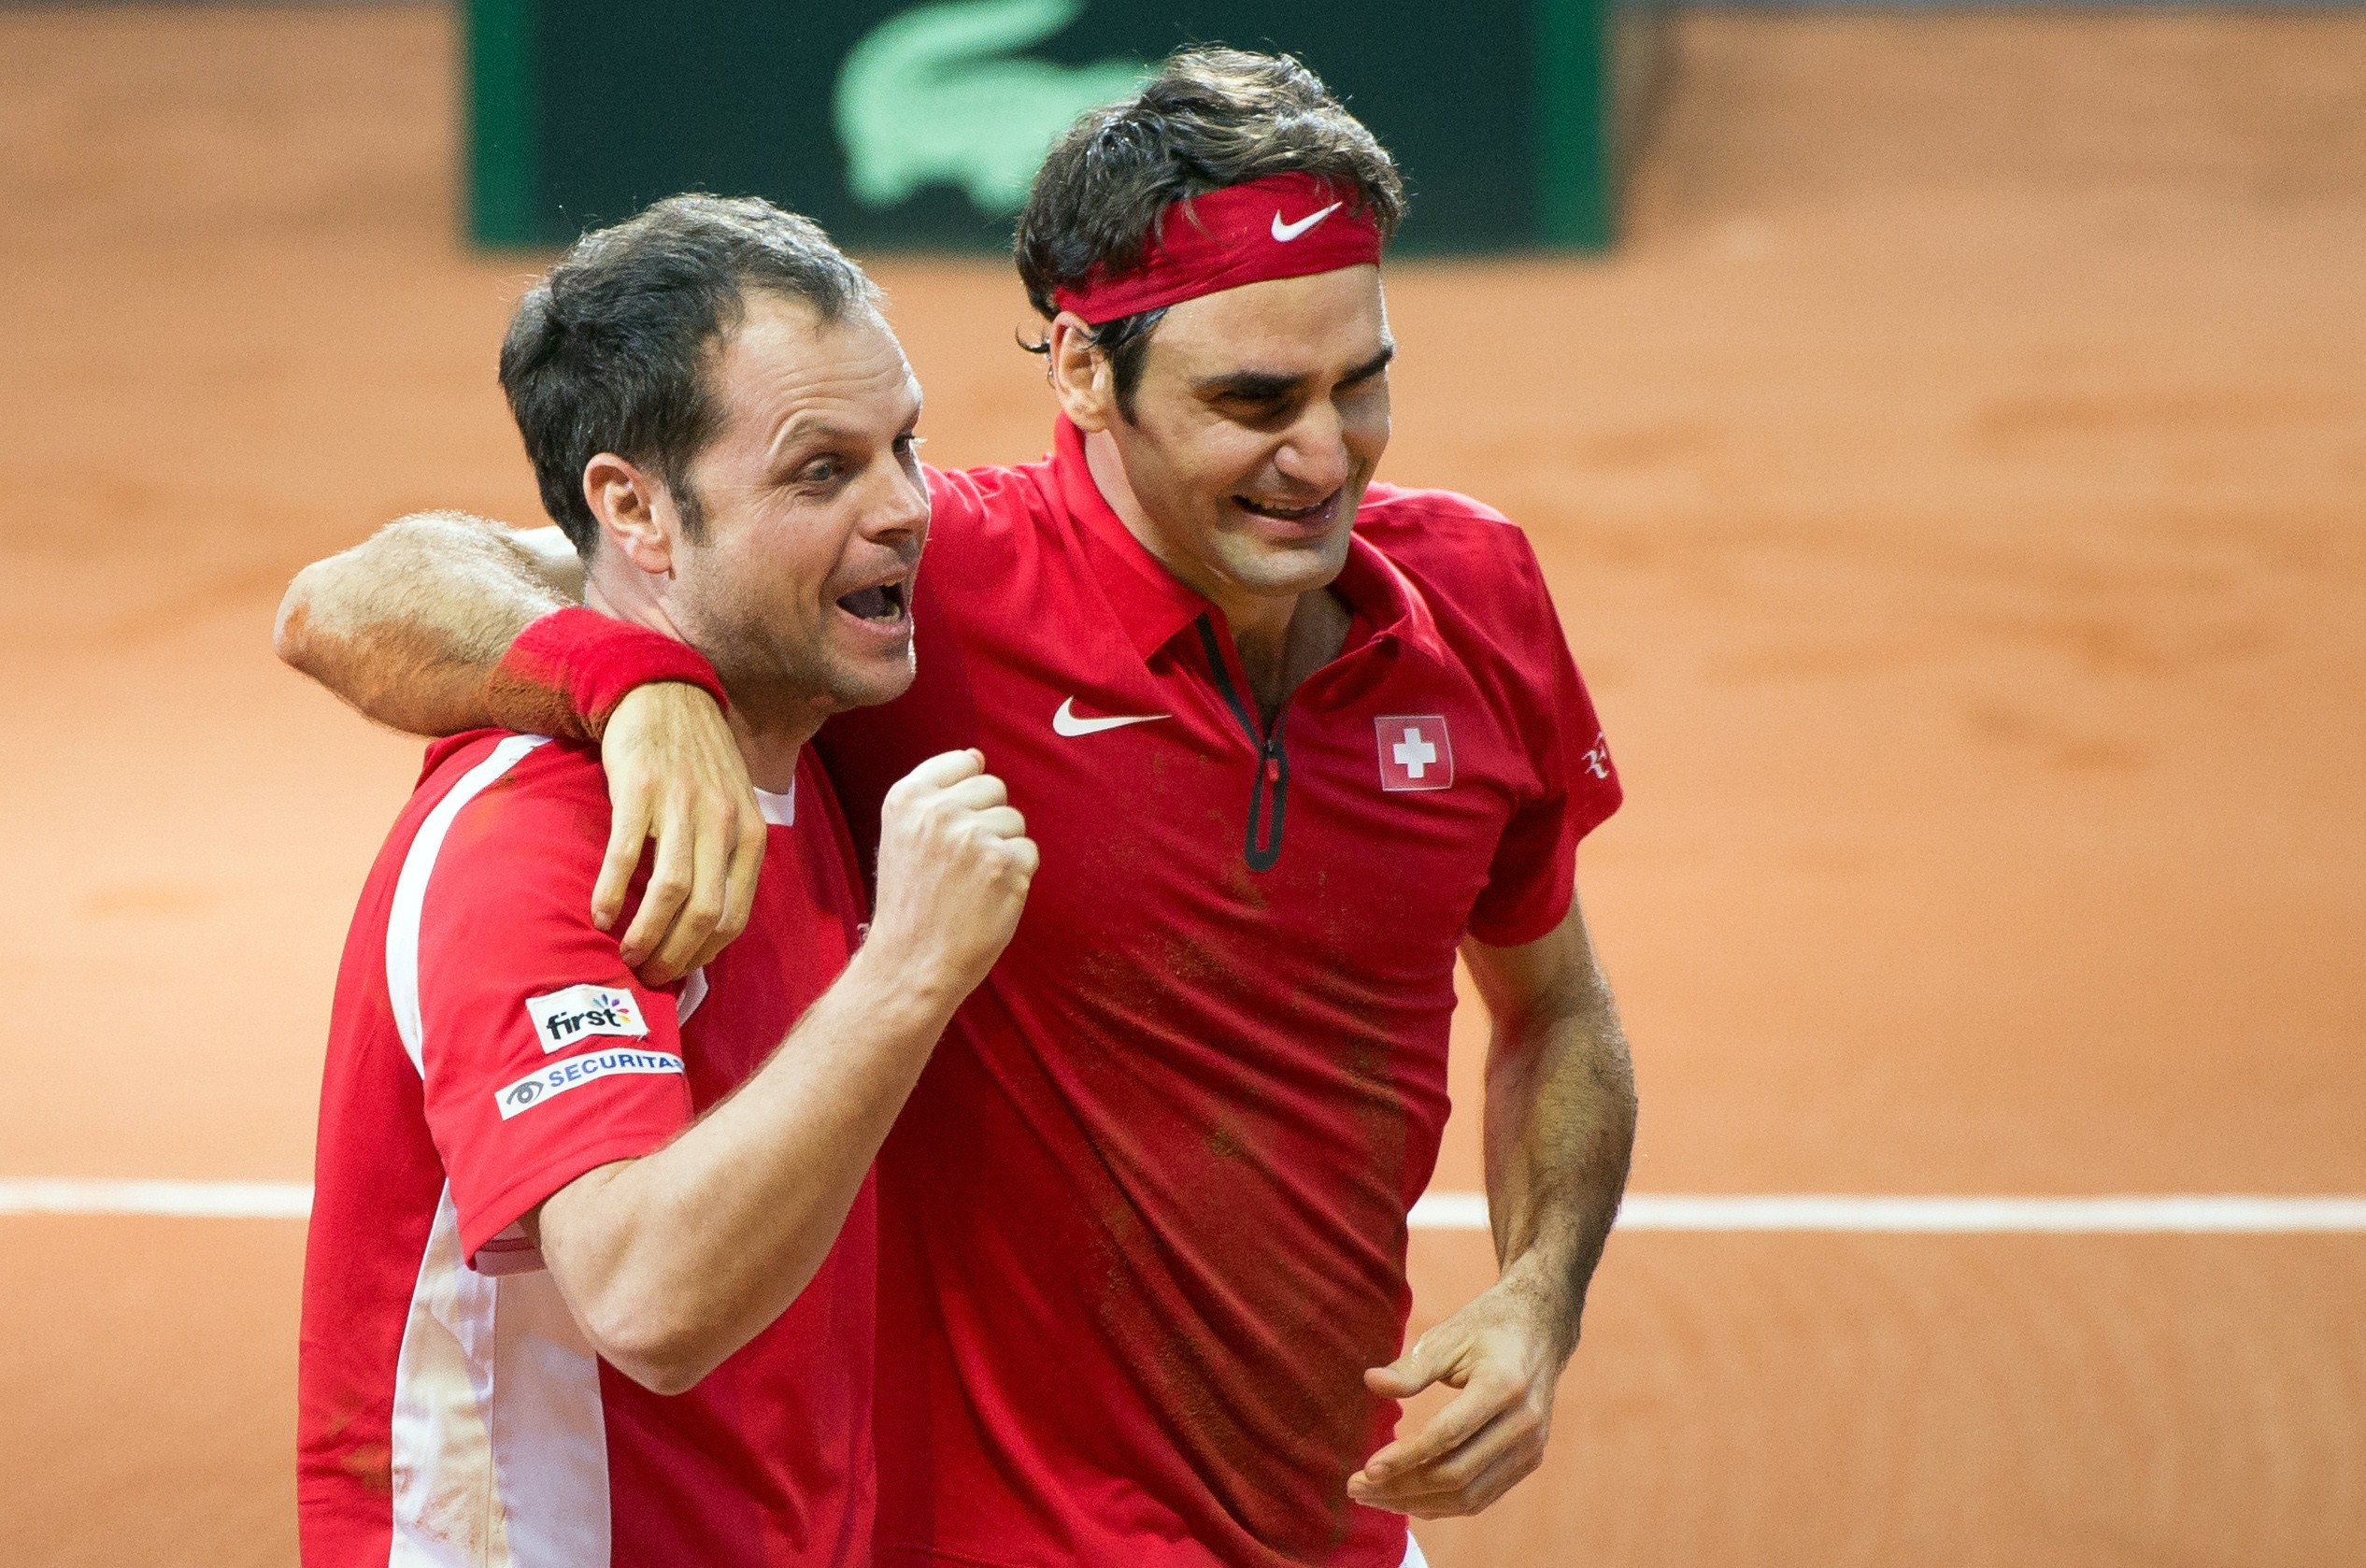 Roger Federer celebrates with Switzerland's Davis Cup team captain Severin Luthi after beating France's Richard Gasquet in their tennis match at the Davis Cup final in 2014.